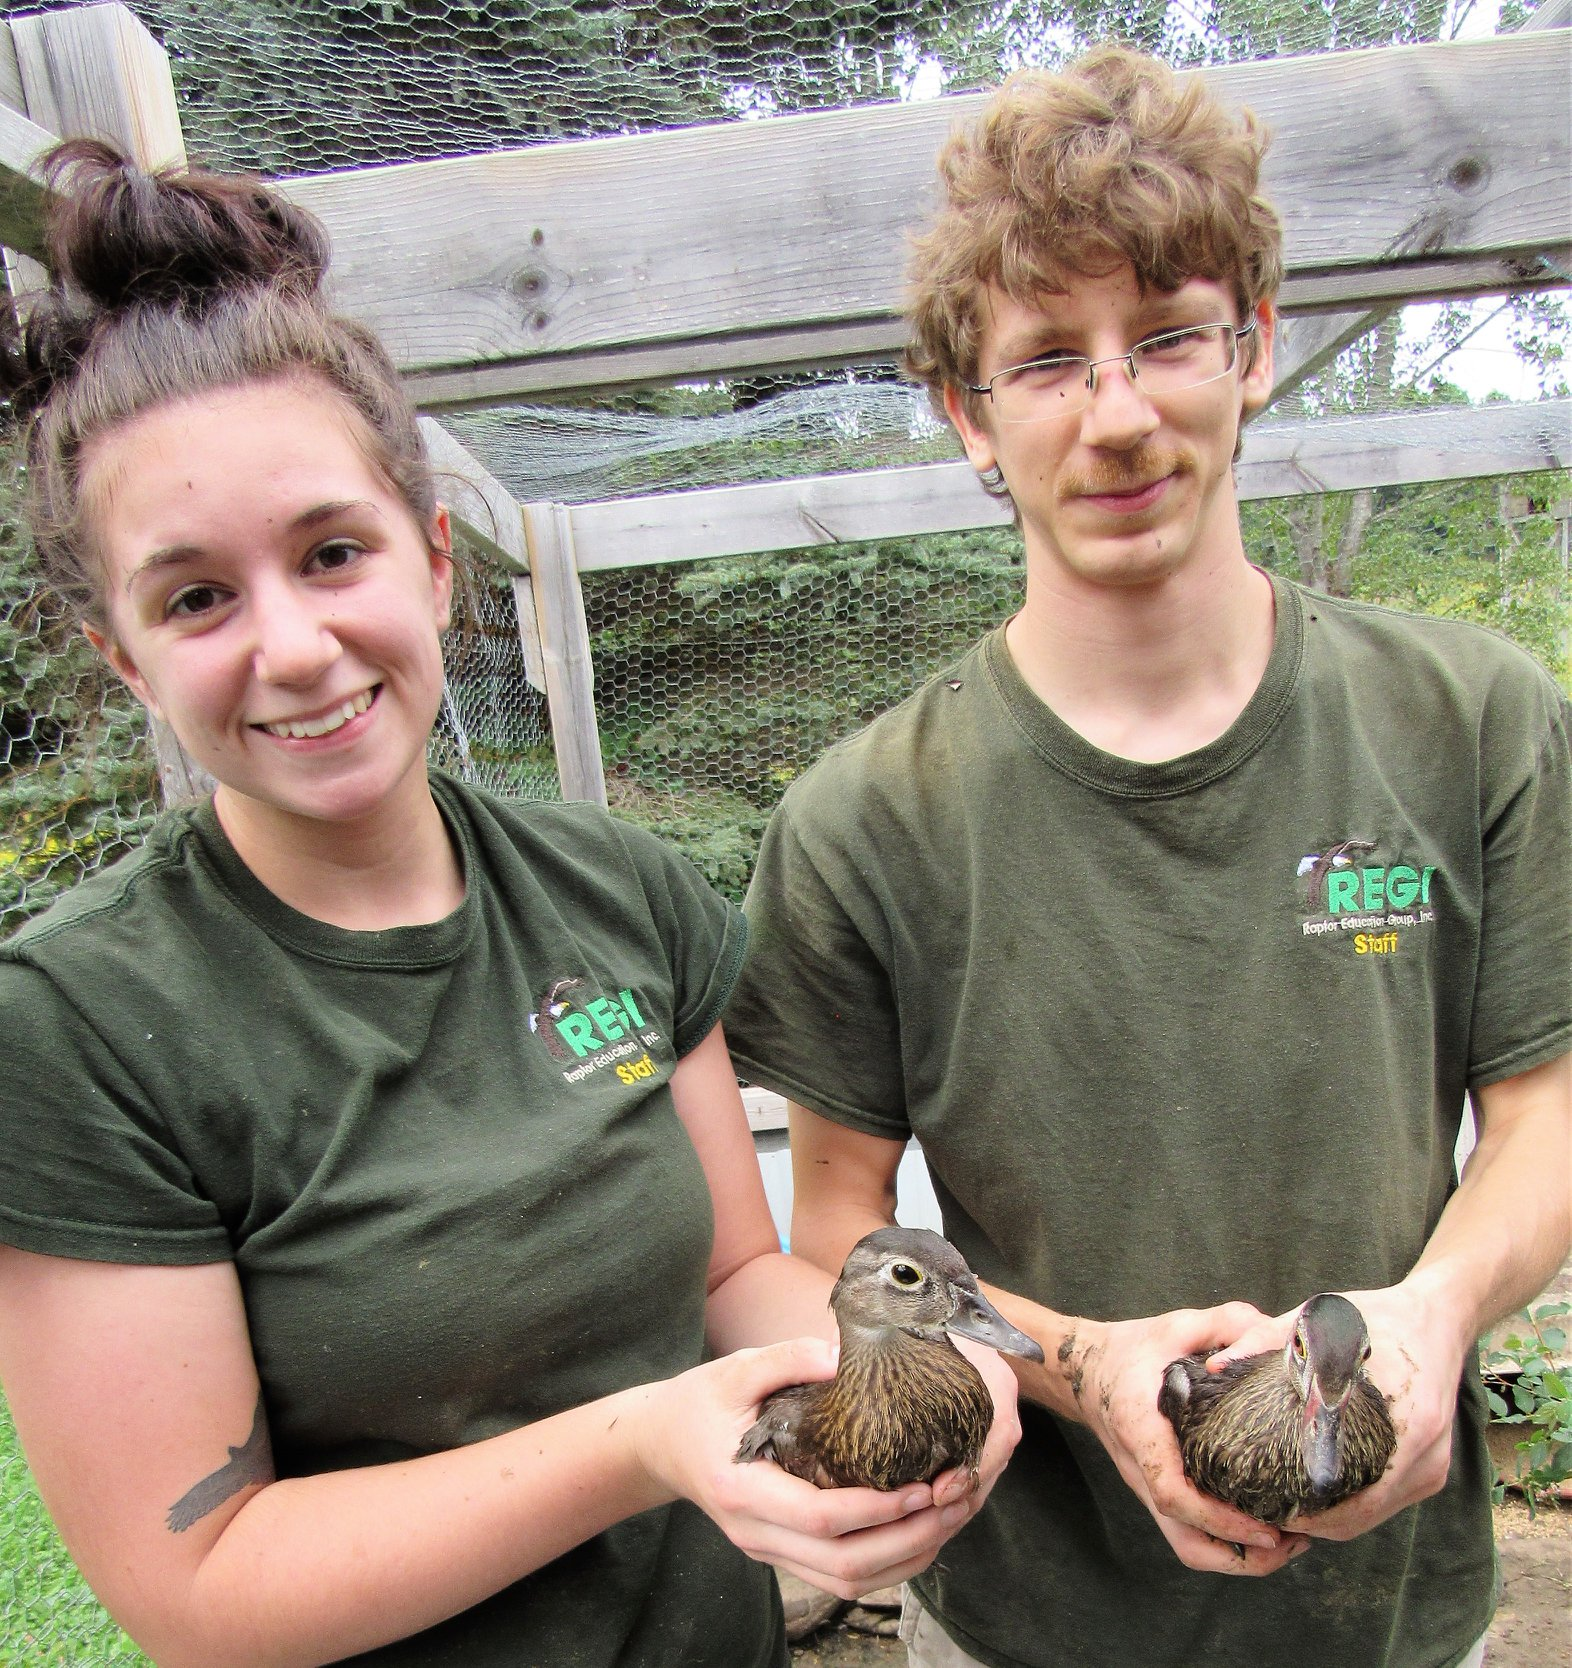 Katie Helland and Greg Russ, with two of the Wood ducks on their way to release.